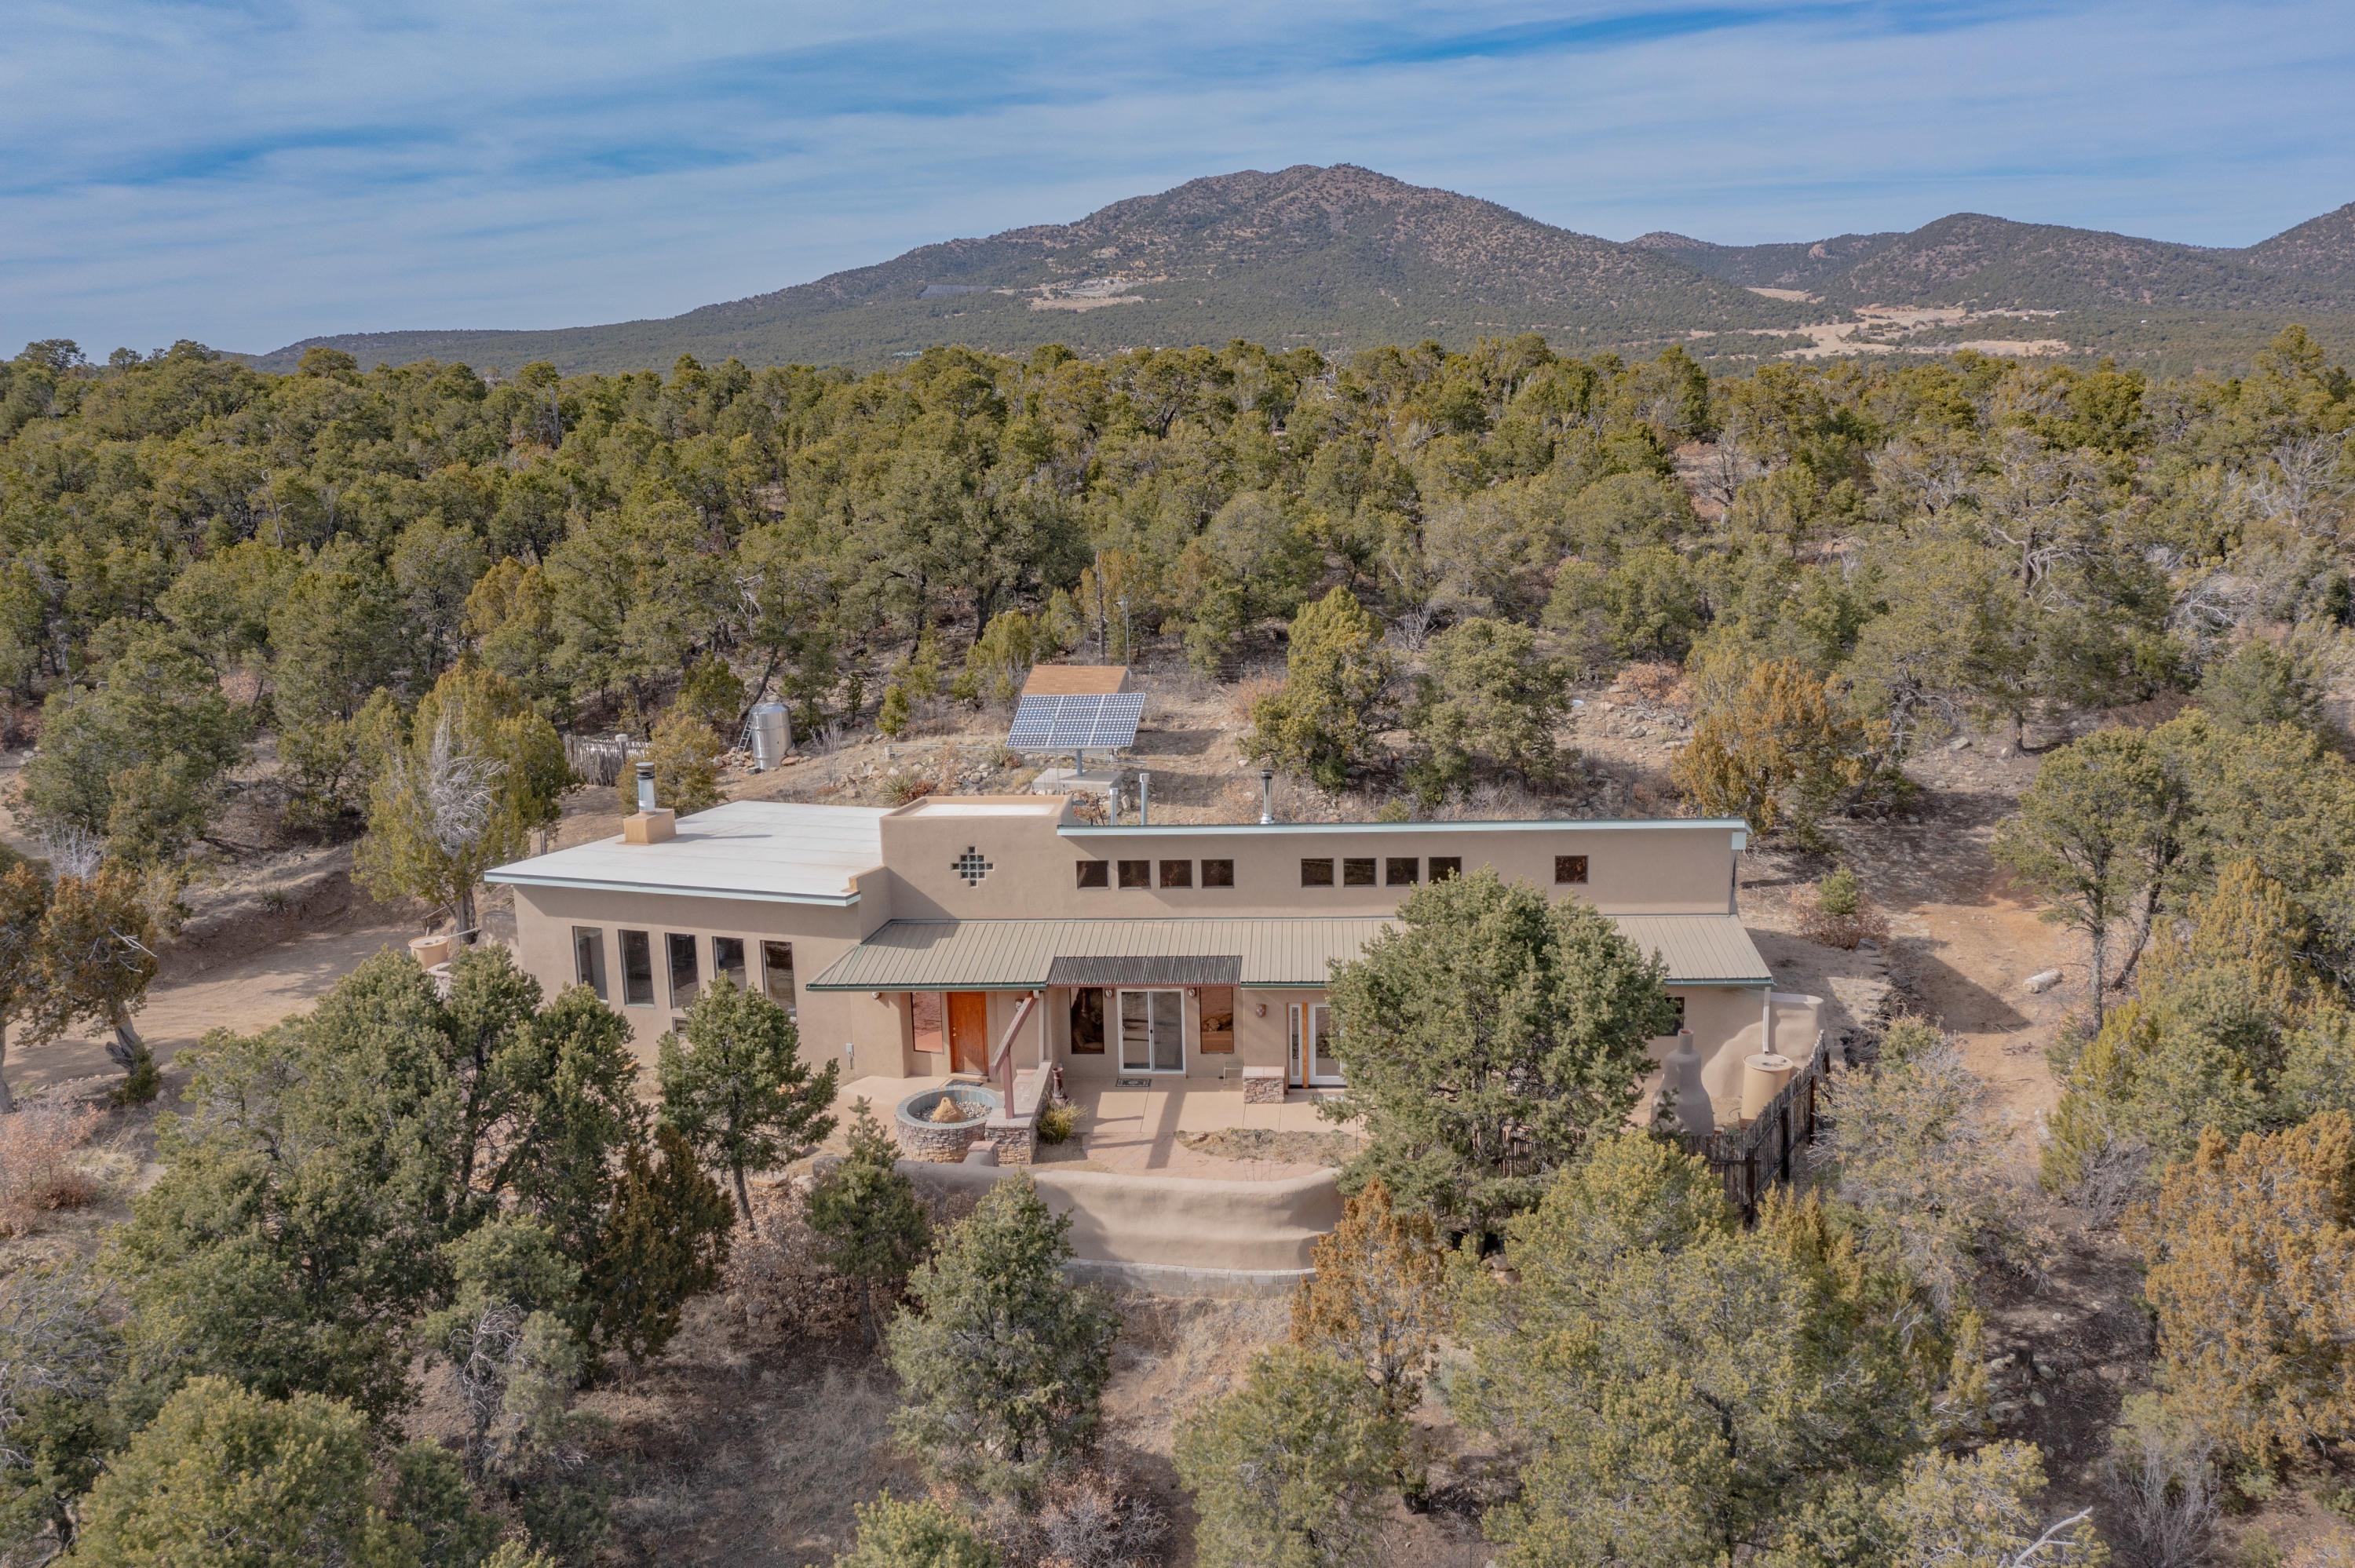 Get out of the city & enjoy fresh mountain air scented of pine trees. Breath deep, relax, & meditate to natures music. Off the Grid passive solar designed home. Conventional Financing available. Extremely private, 7.6-acres fenced w/solar powered remote-control gate access. 35 mins from ABQ & 45 mins from Santa Fe. 1200 tires rammed w/3,500 tons of adobe dirt. Interior walls covered w/ adobe mud. Exterior walls covered with 1' foam board insulation & 3 coat stucco. South facing wall is 2X6 frame const w/ Icynene insulation & dbl pane safety glass. Custom kitchen w/Hickory cabinets, granite counters, Premier 36'; 6 burner gas range designed for off-grid. 26 cu/ft propane refrigerator. Living/dining room is 1,000 sqft w/ massive fireplace, in-ground 900 gallon water tank & waterfall feature.